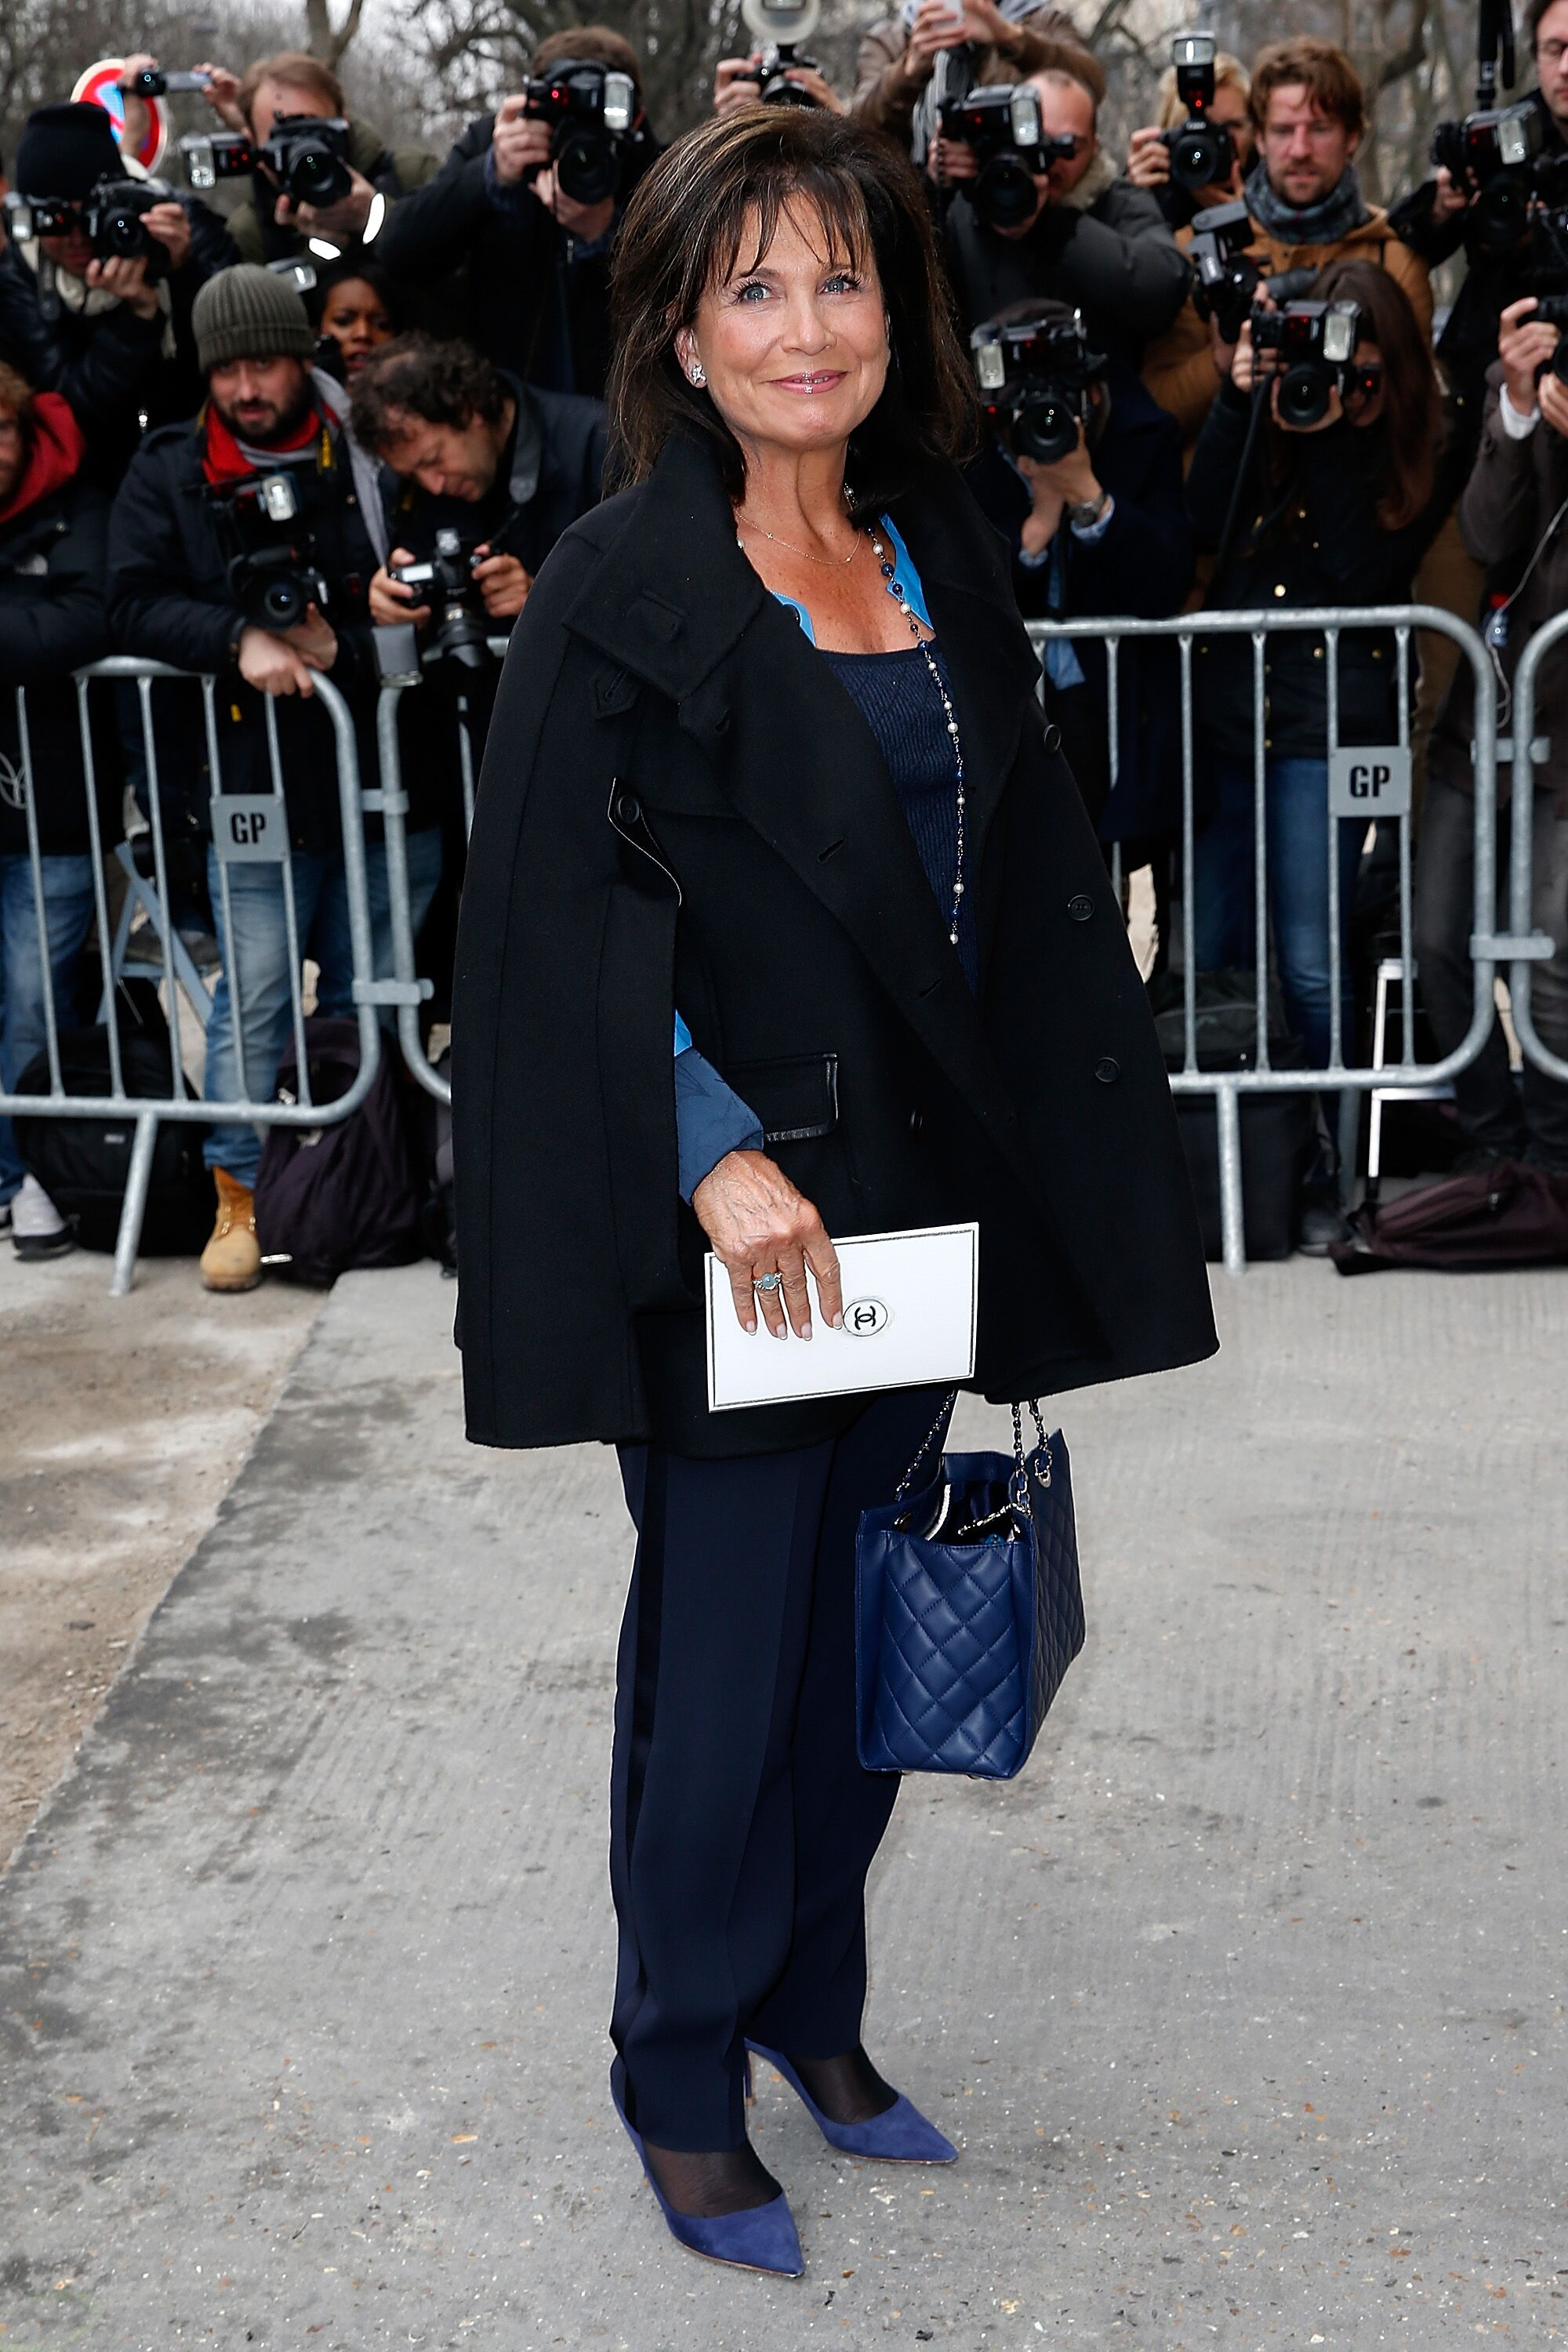 Anne Sinclair assiste au défilé Chanel dans le cadre de la Fashion Week de Paris Automne / Hiver 2015/2016 le 10 mars 2015 à Paris, France. | Photo : Getty Images